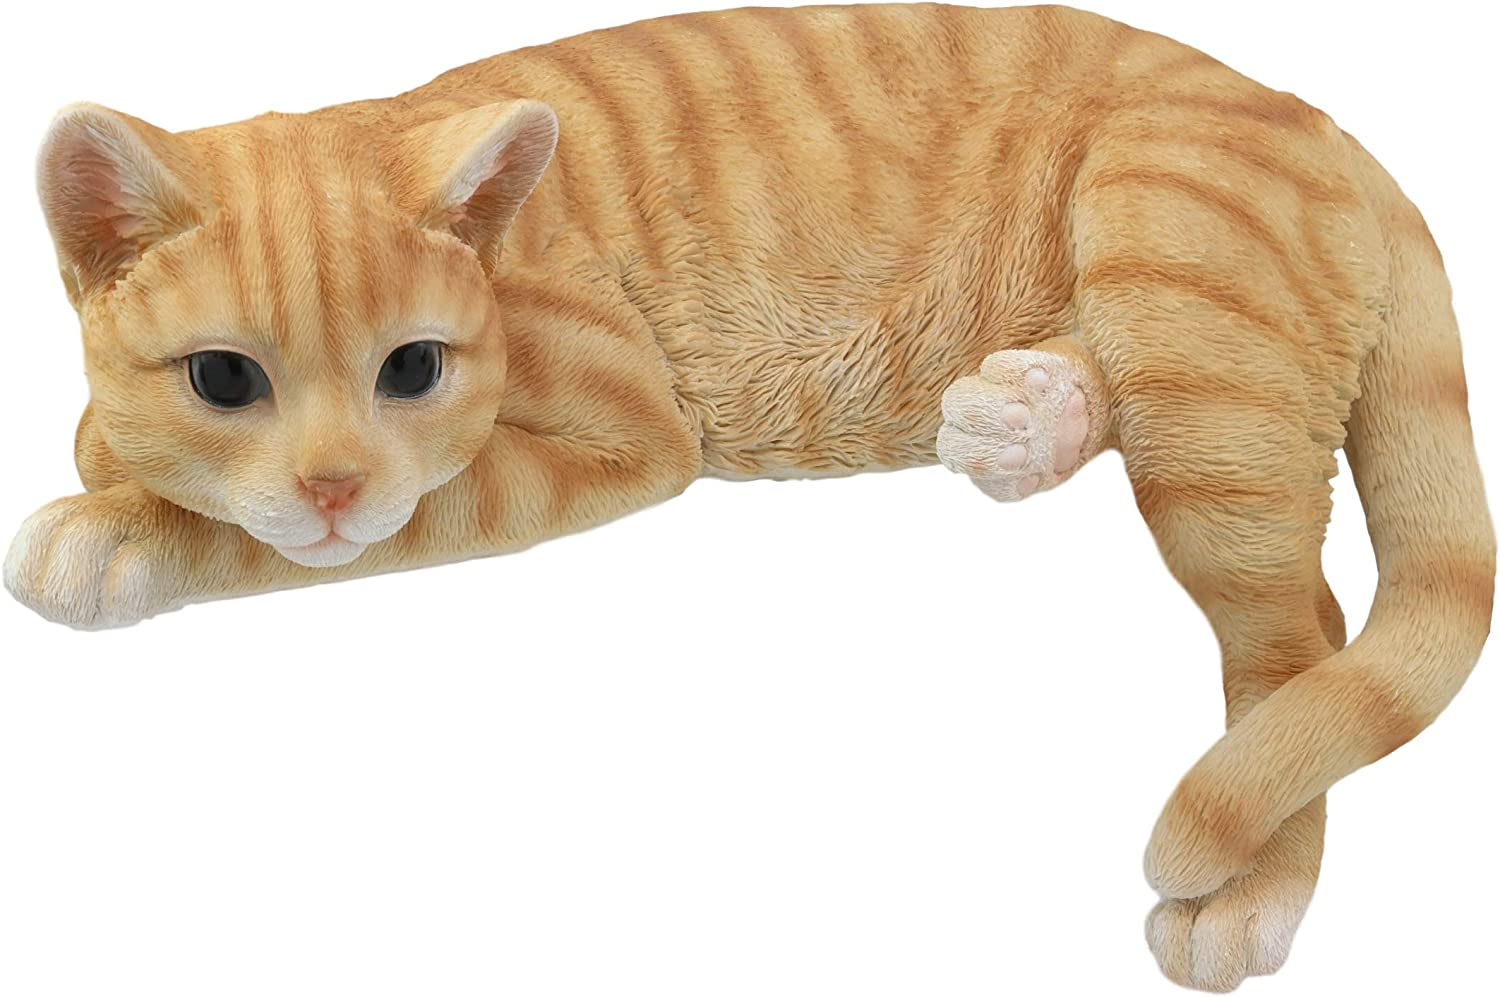 "Ebros Lazy Days Lifelike Perching Orange Tabby Cat Shelf Sitter Statue 13.25"" Long with Glass Eyes Hand Painted Realistic Feline Decor Figurine Cats Kittens Kitties Animal Pet Sculpture"